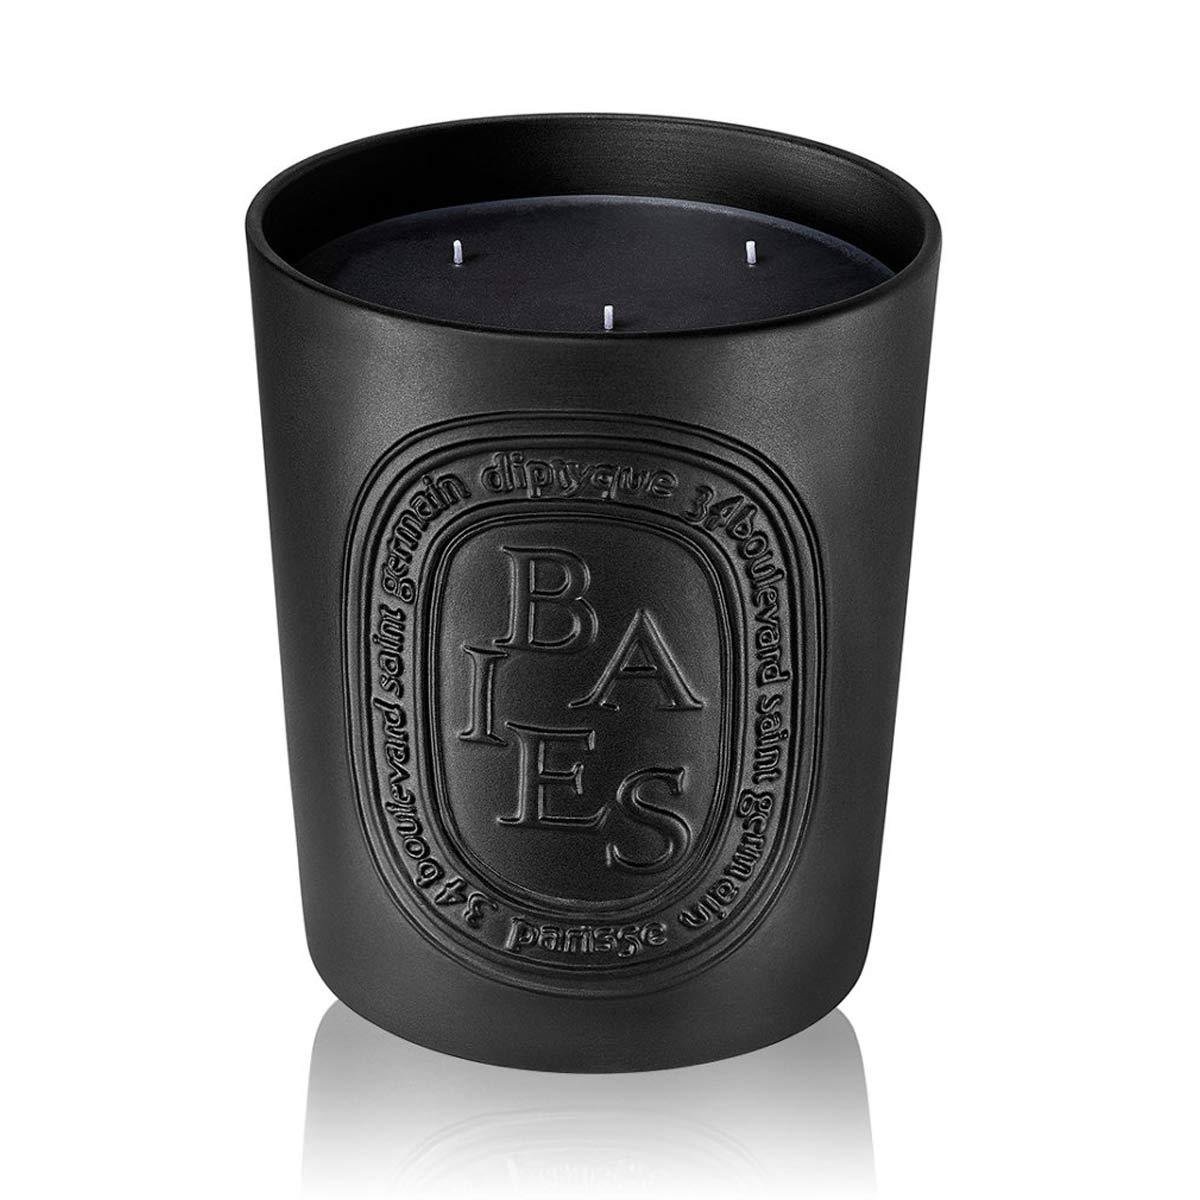 Diptyque Baies 3 Wick Candle 600 g by Diptyque